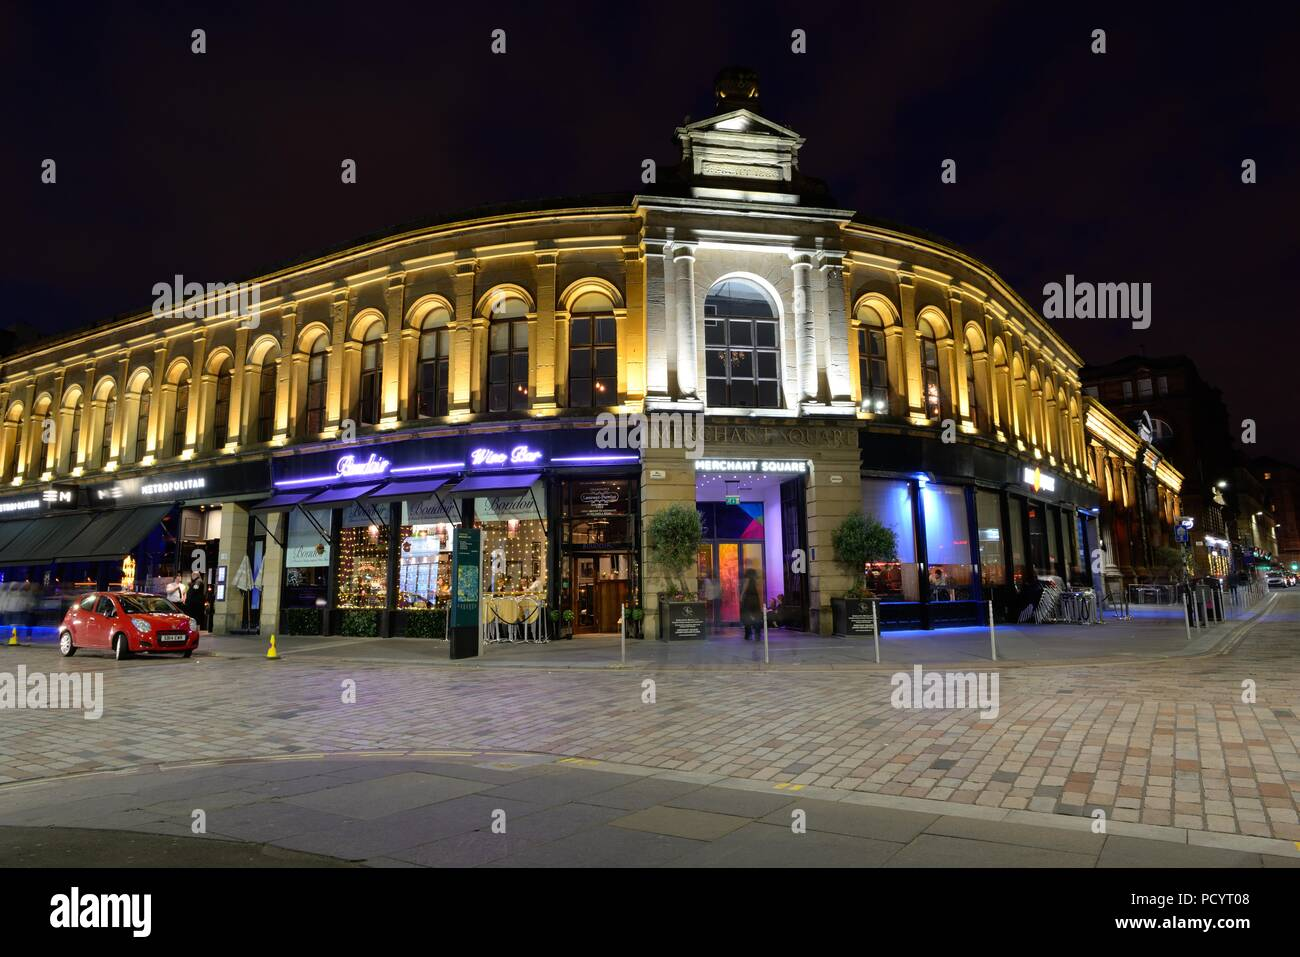 Merchant Square building illuminated at night in in the Merchant city area of Glasgow, Scotland, UK - Stock Image